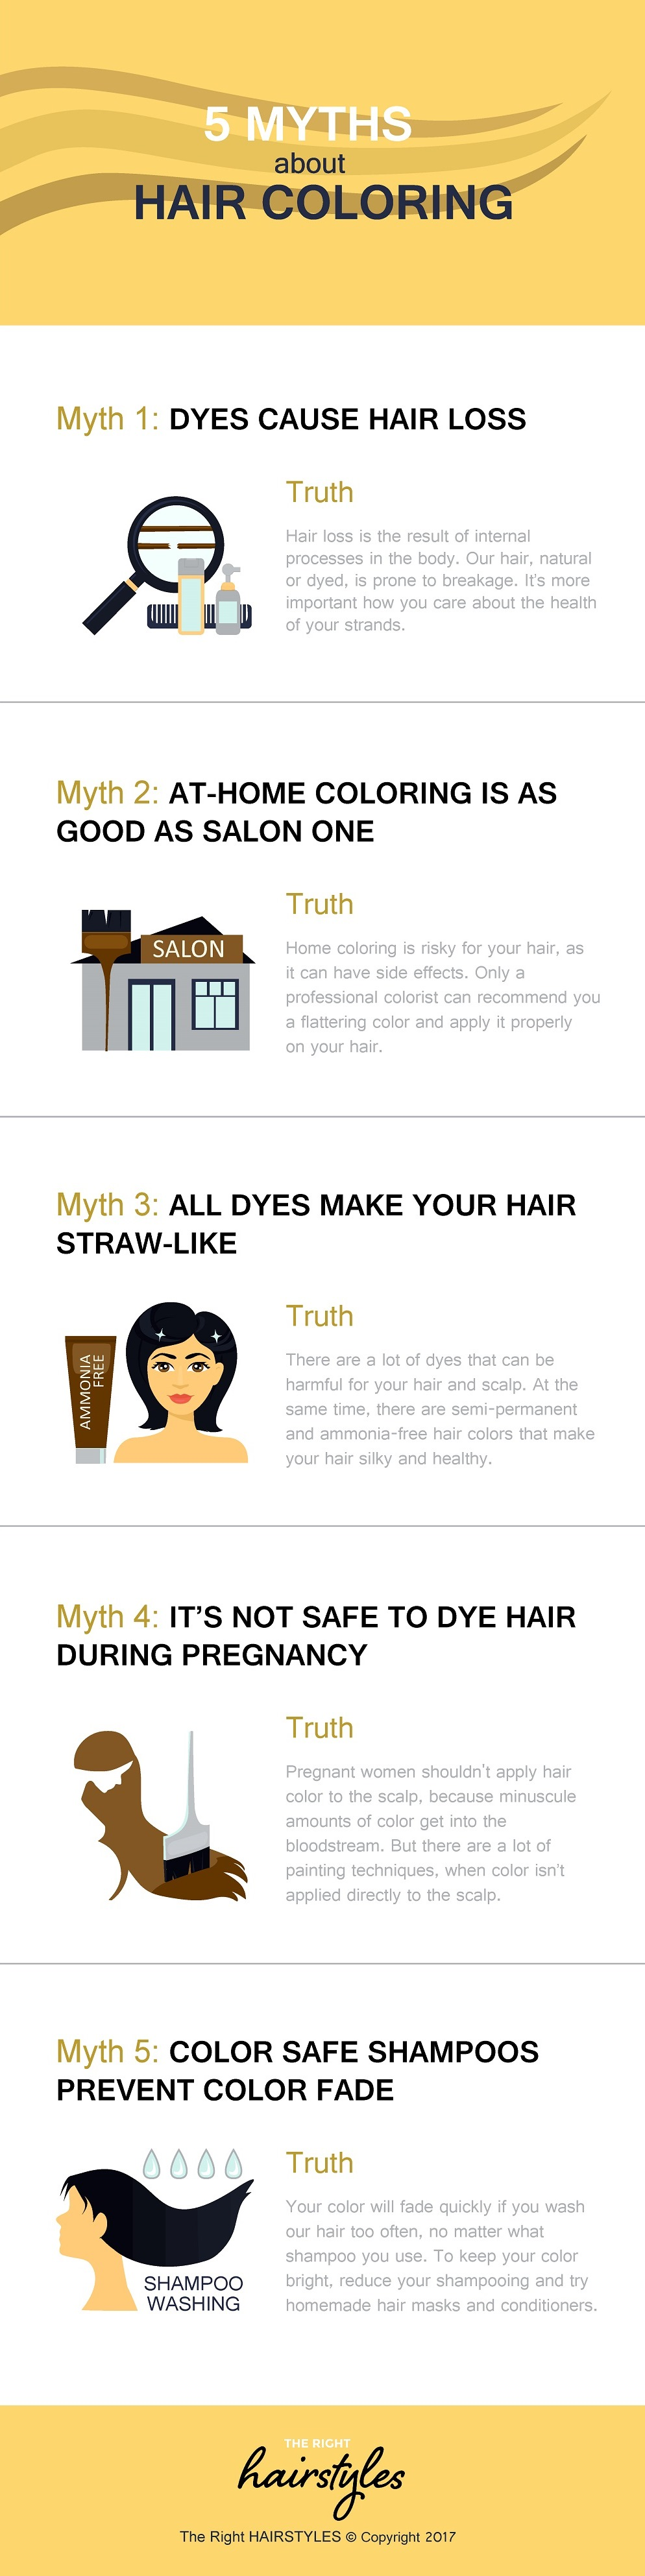 mythes infographie coloration cheveux